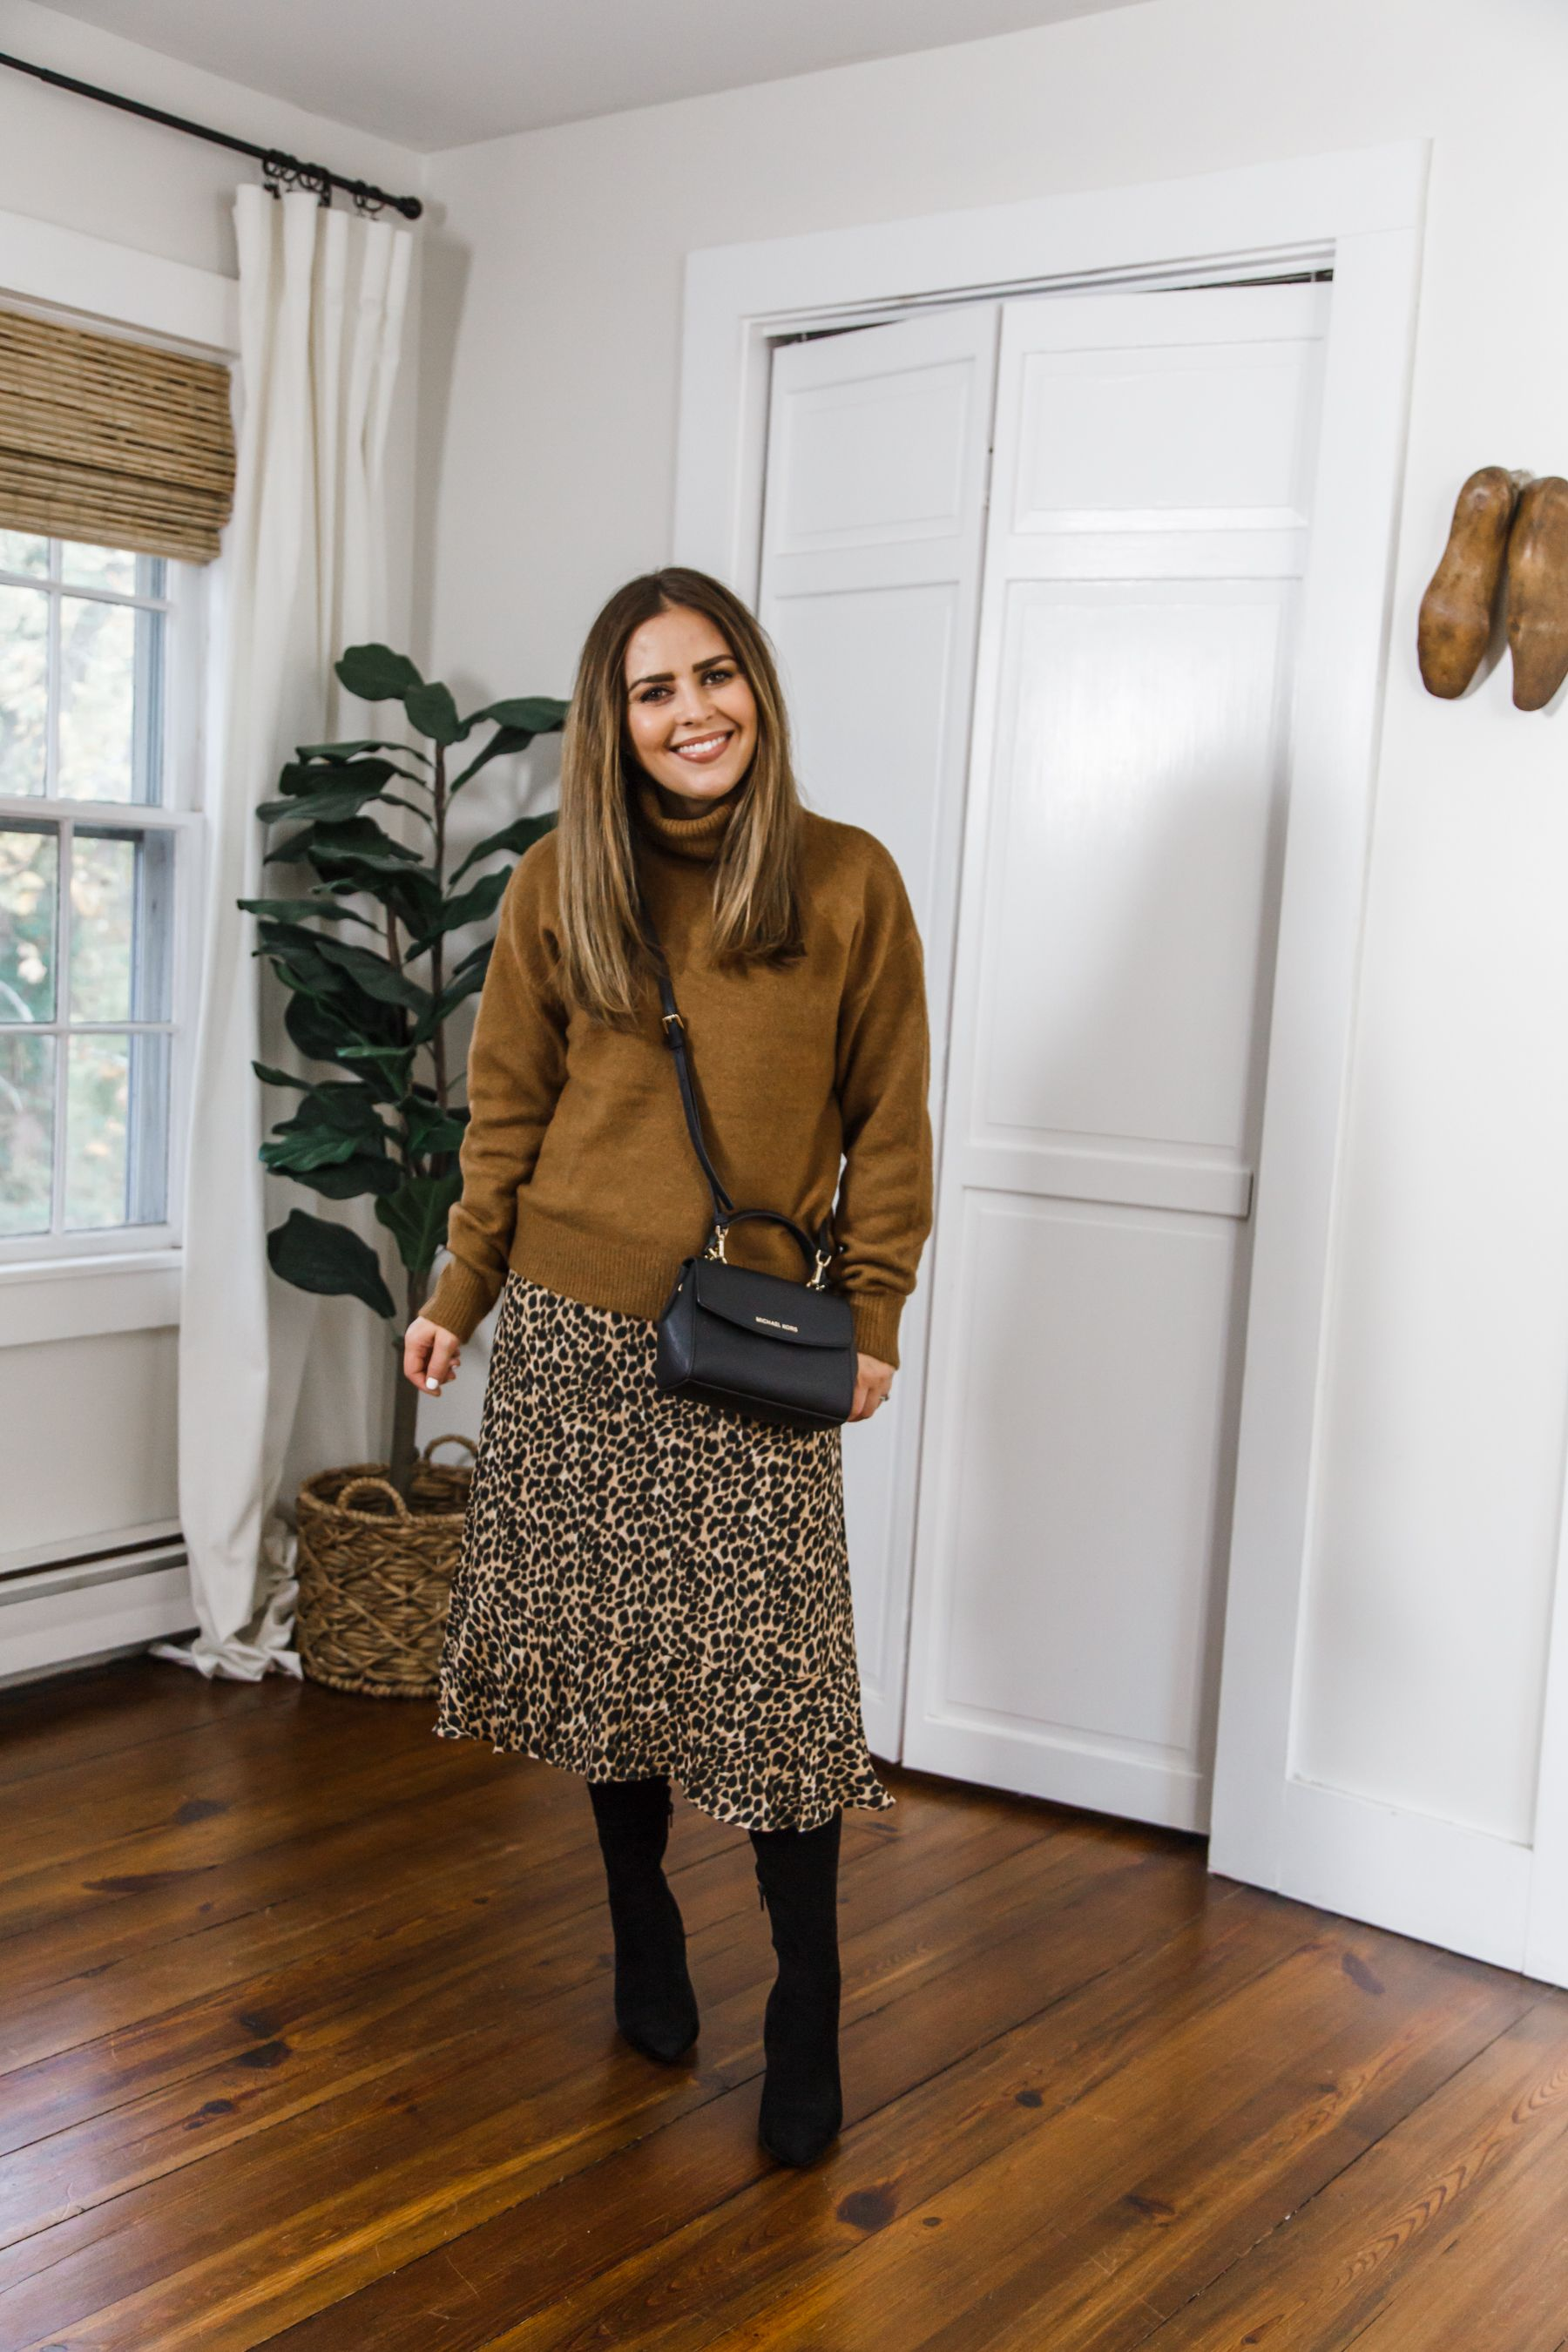 10 Ways To Style The J Crew Factory Leopard Print Dress Dress Cori Lynn Print Dress Leopard Print Dress Winter Dress Outfits [ 2700 x 1800 Pixel ]